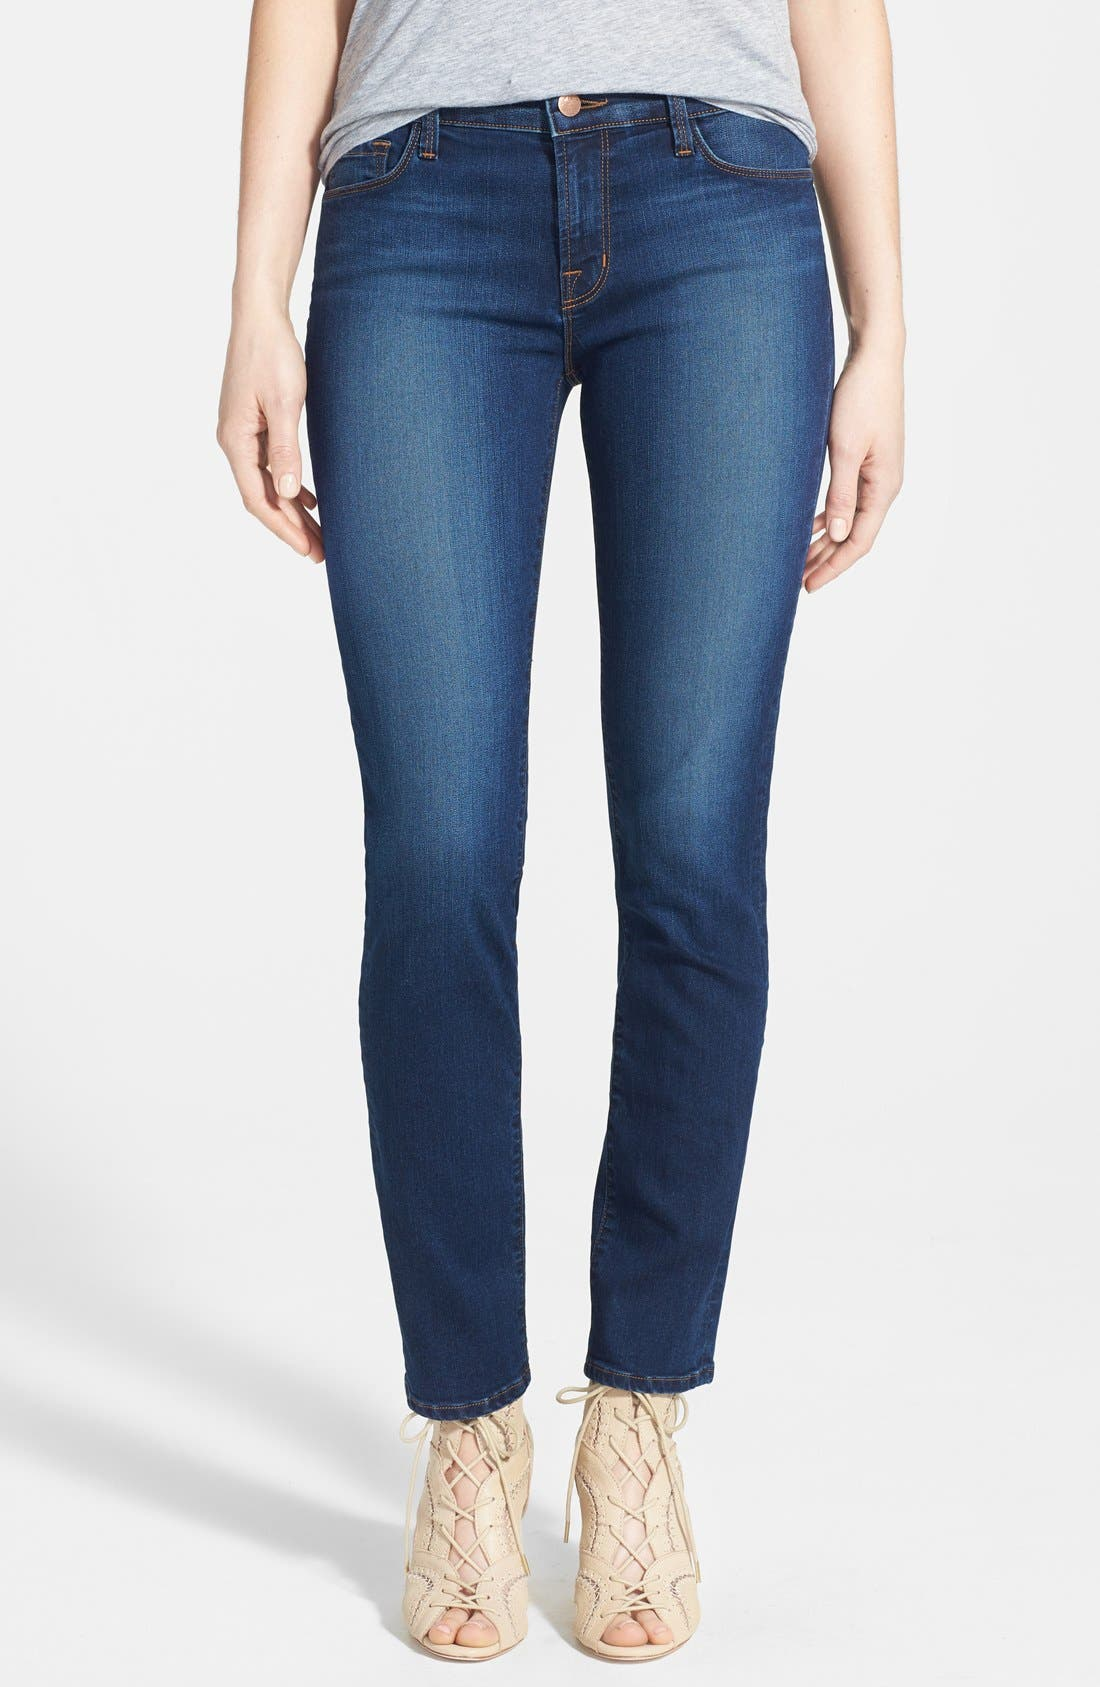 Alternate Image 1 Selected - J Brand '811' Skinny Stretch Jeans (Saltwater)